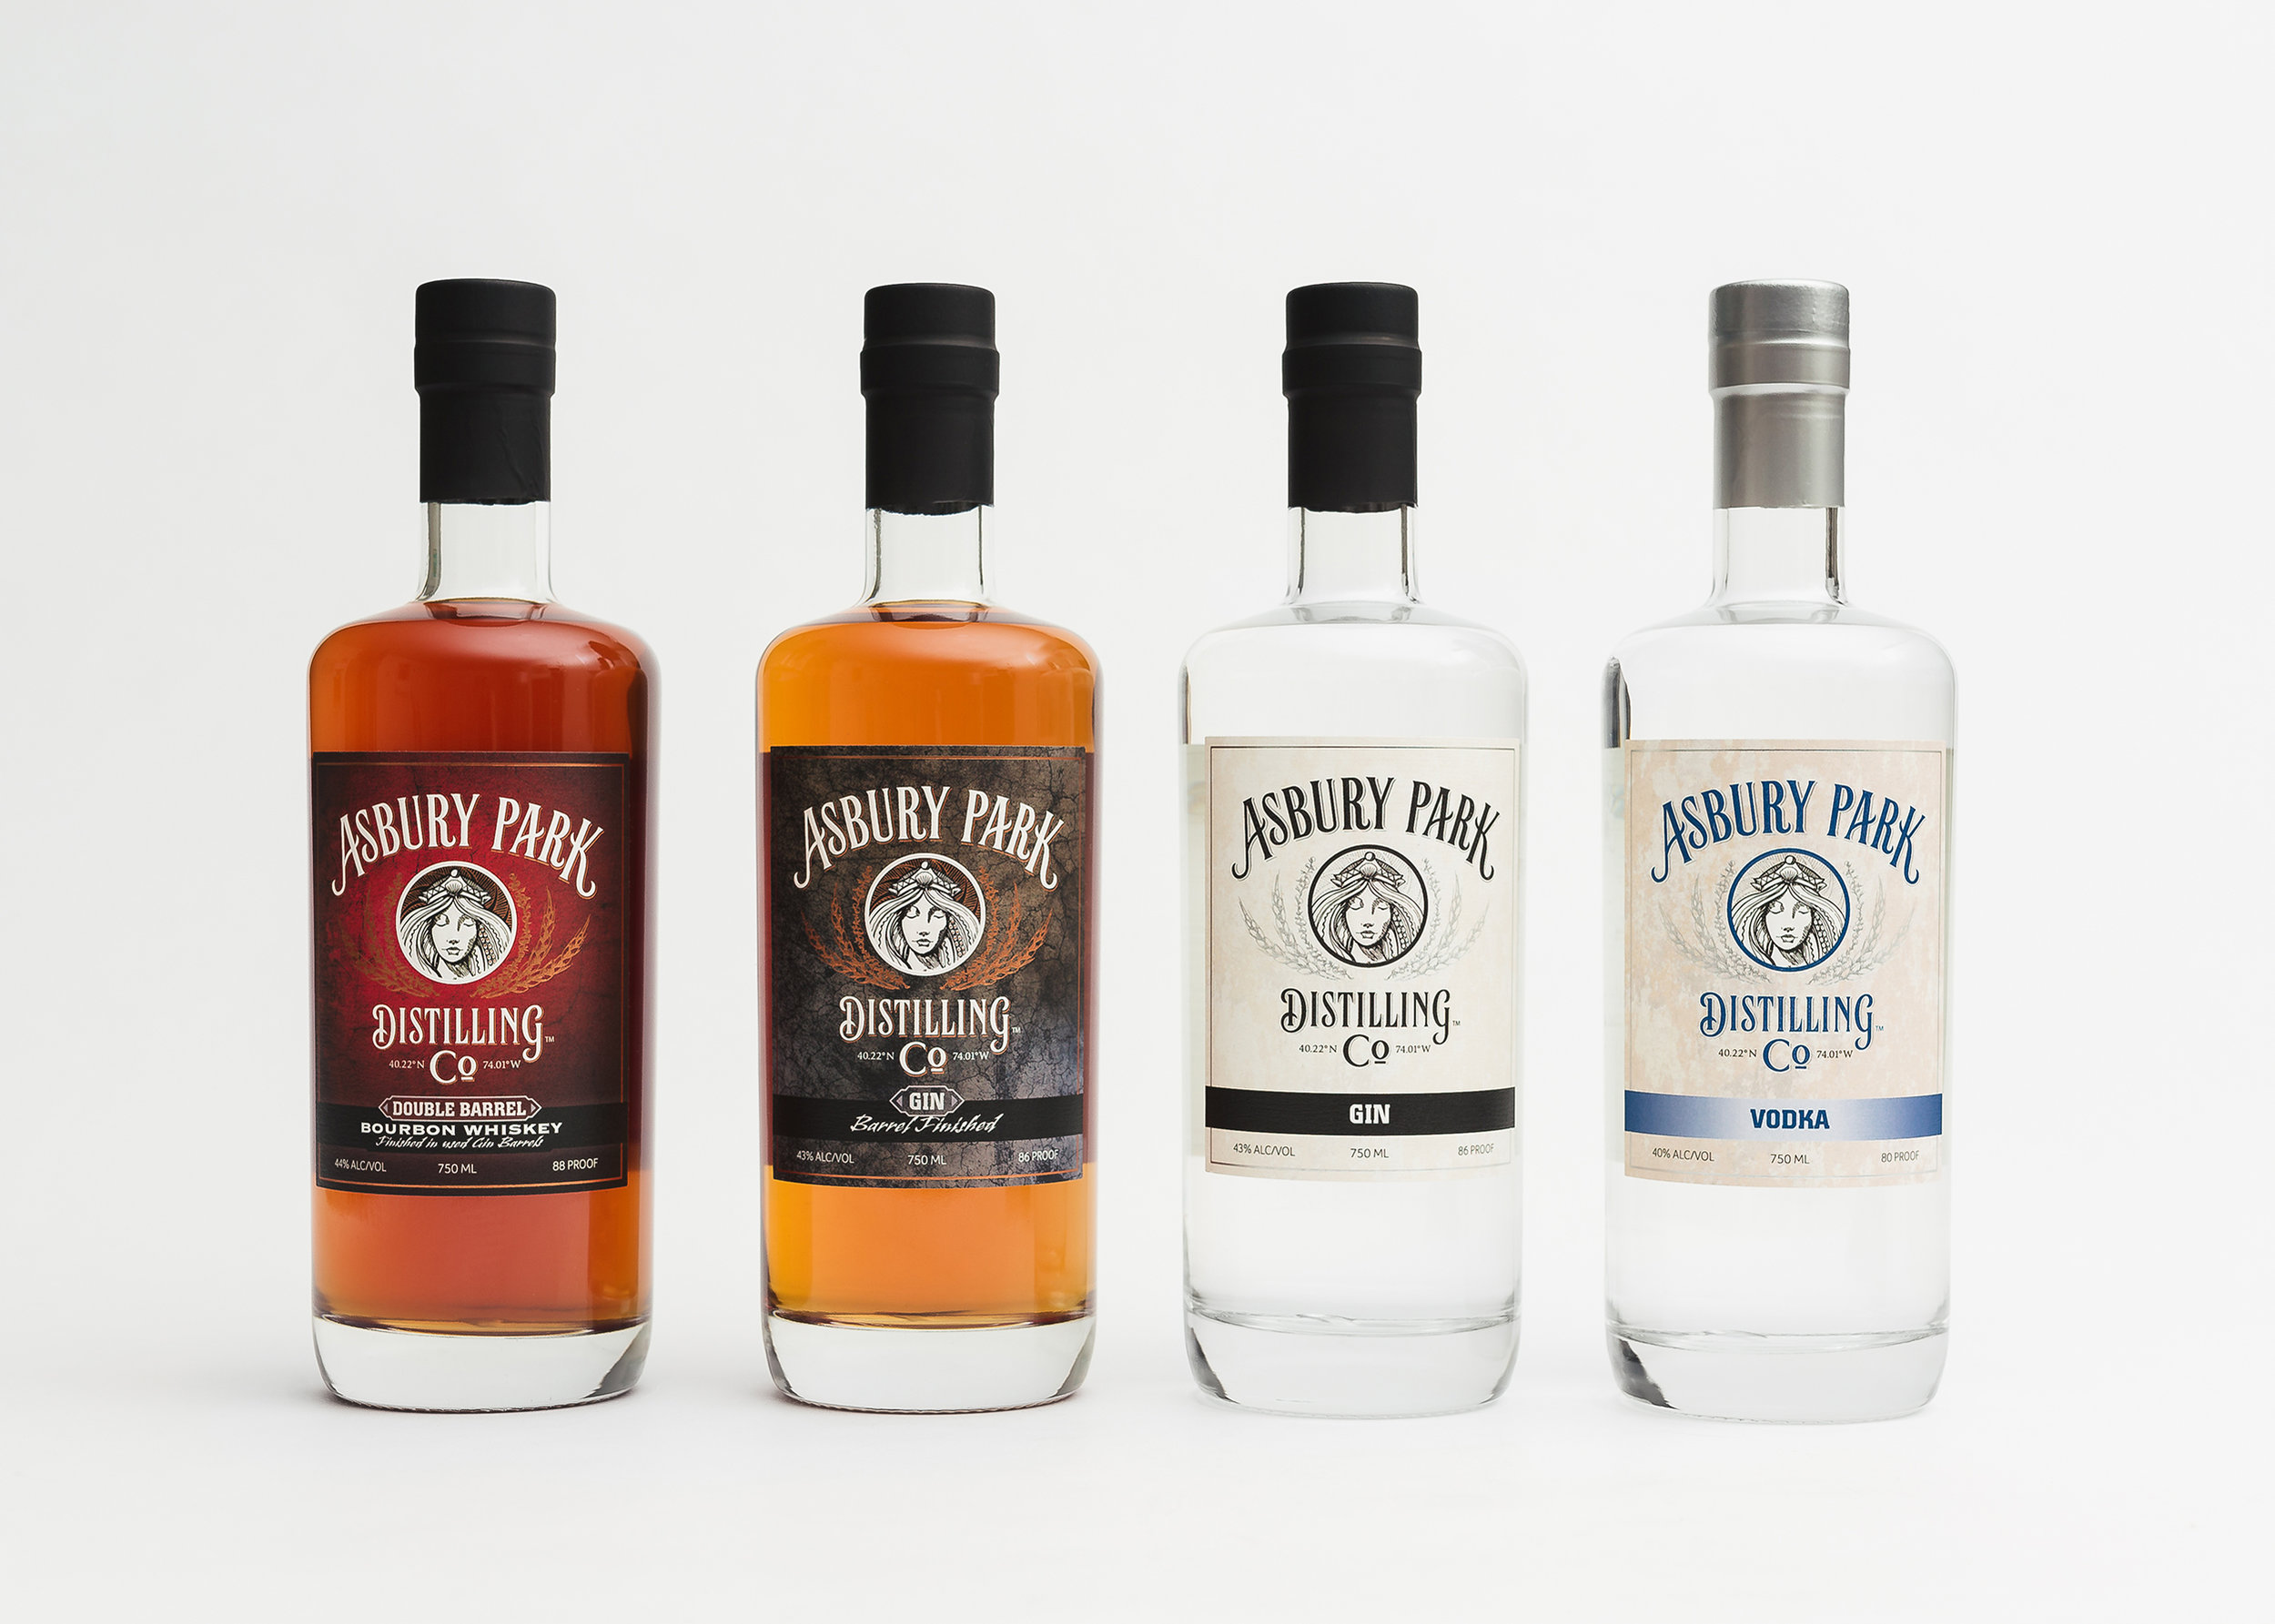 Asbury Park Distilling Products